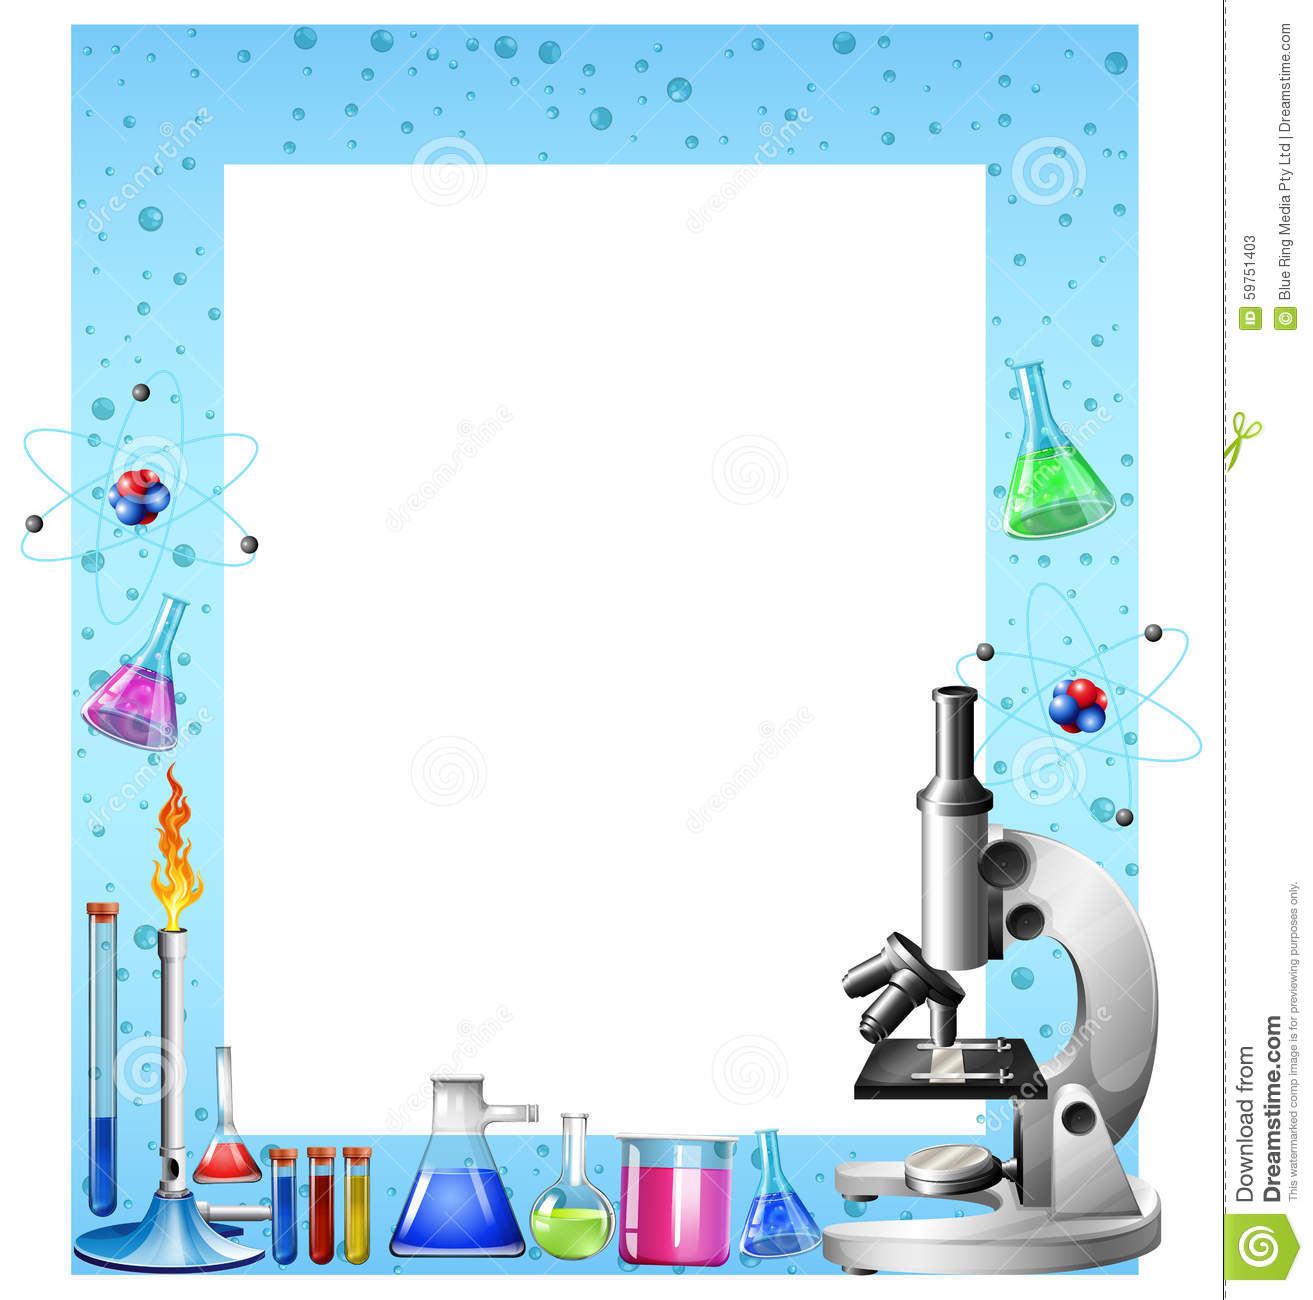 Scheme Design Science Tools And Containers Stock Vector Image 59751403